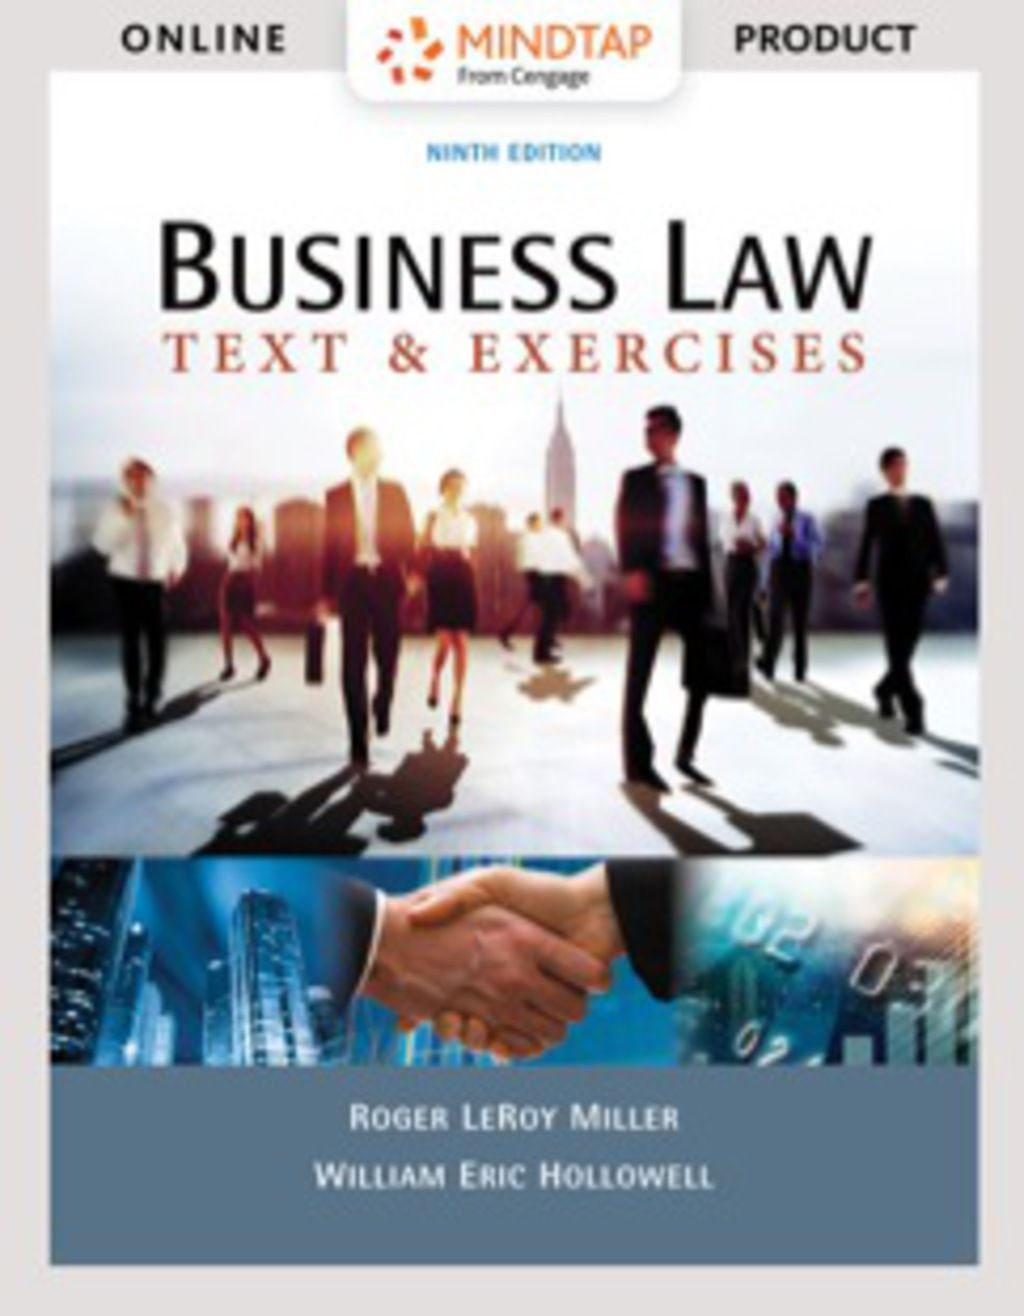 Mindtap Business Law For Miller Hollowell S Business Law Text Exercises 9th Edition Instant Access 1 Term 6 Month 9th E In 2021 Business Law Ebook Good Books